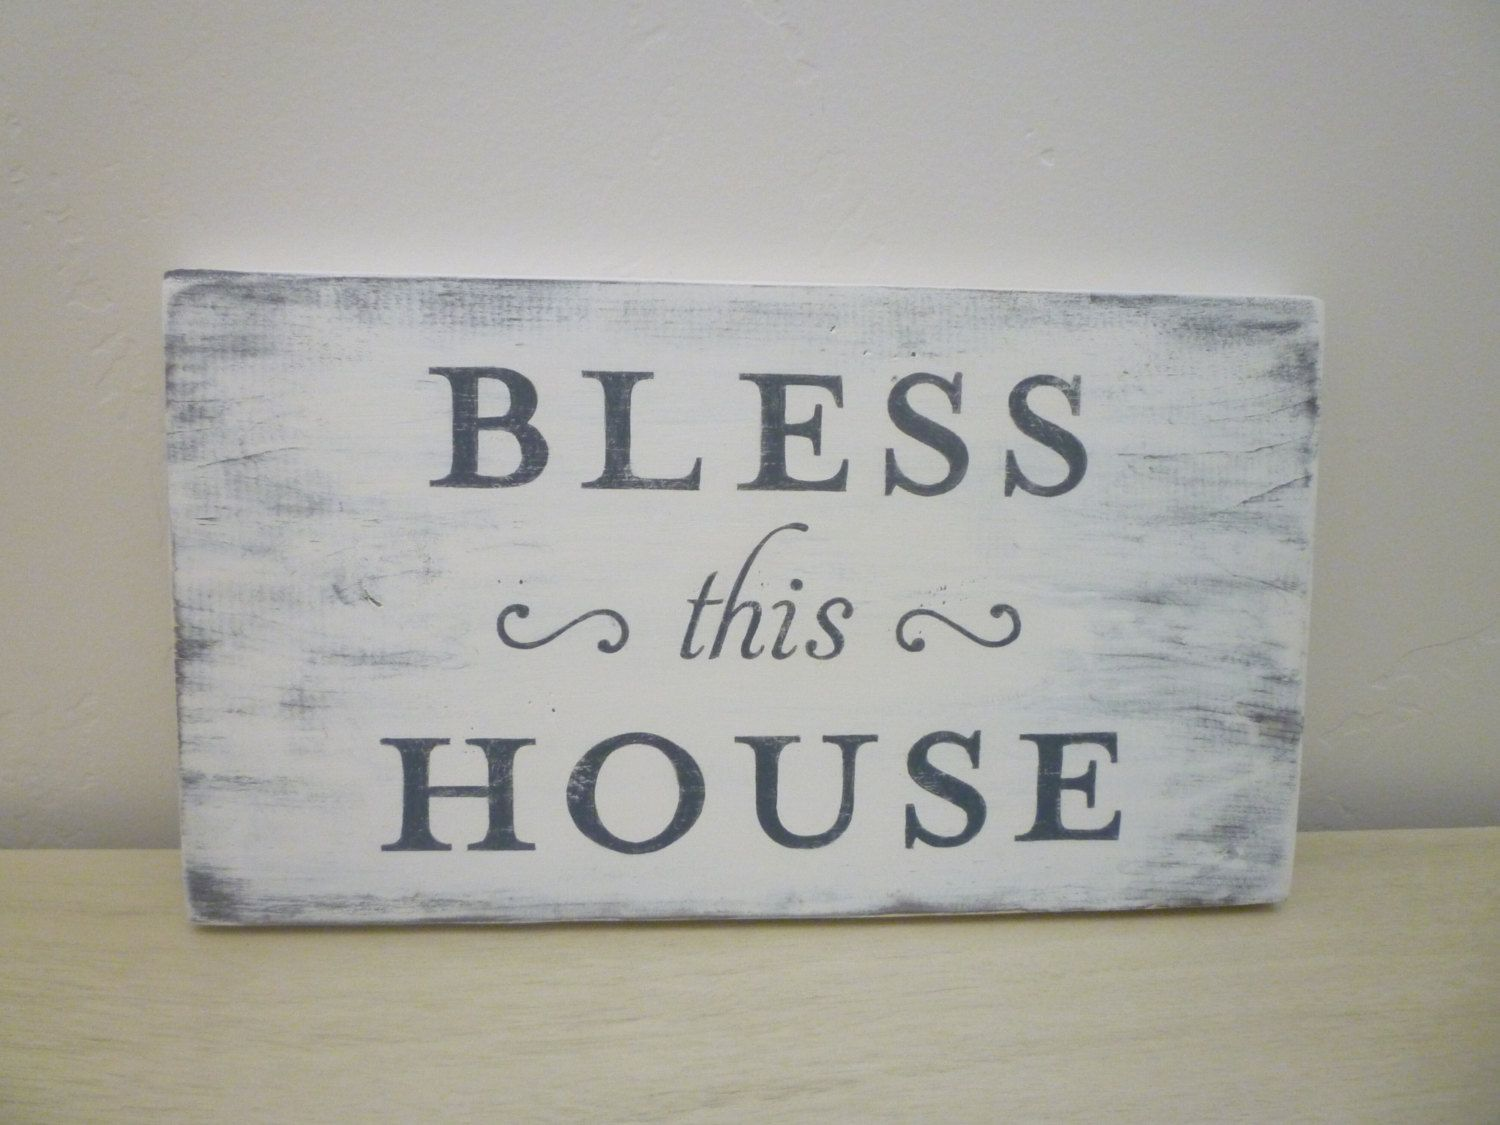 Bless This House Distressed Wood Sign Rustic Farmhouse Décor Shabby Chic French Country Newstagedesigns Smallbusinesser